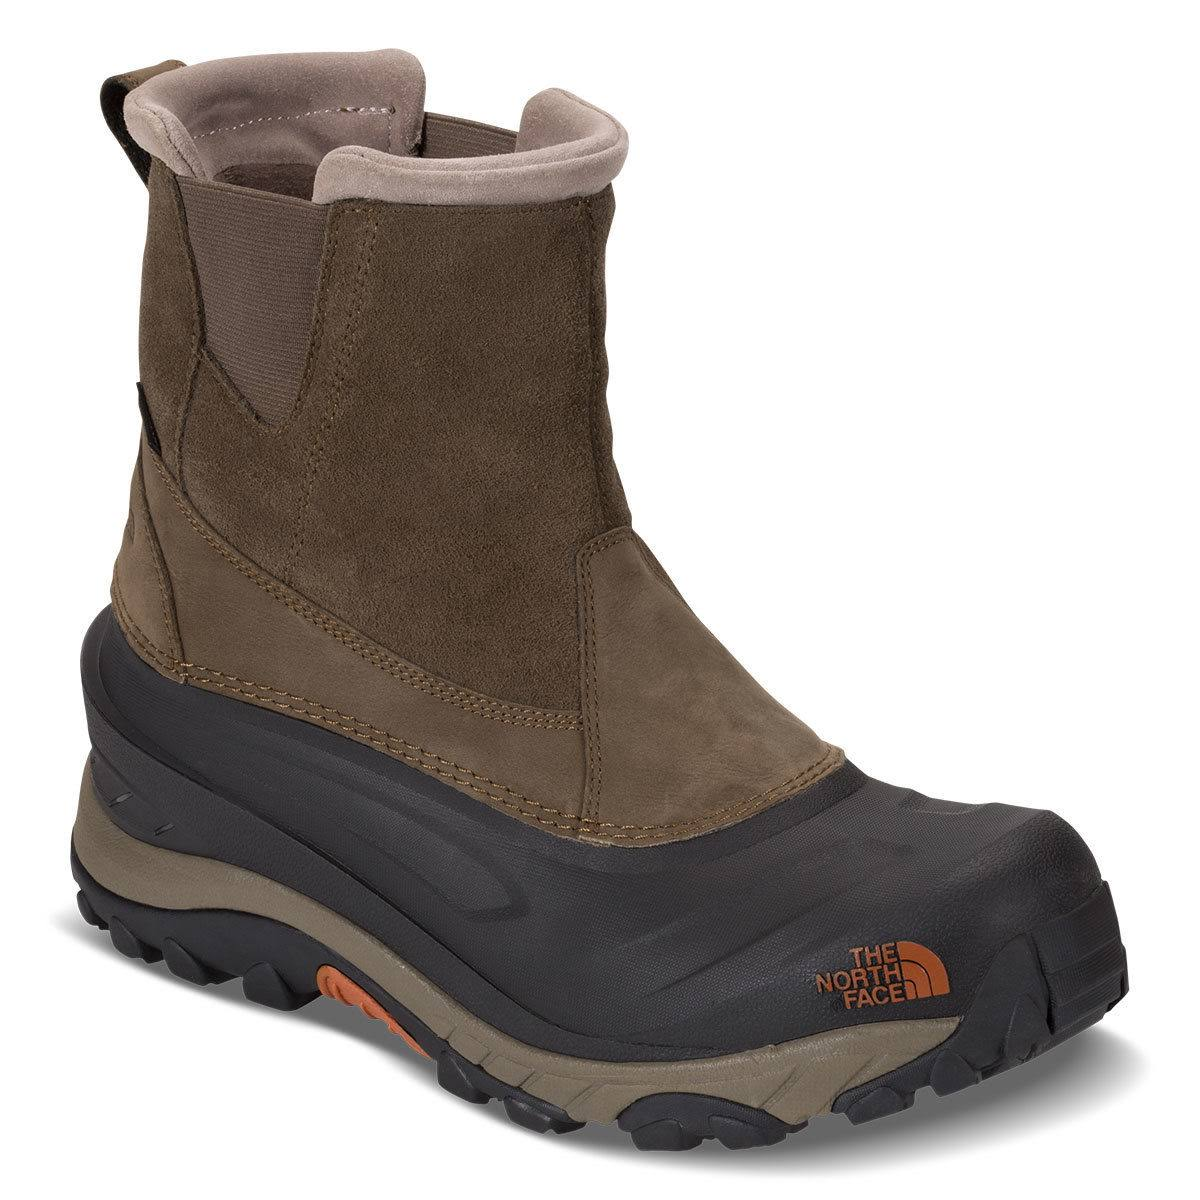 The North Face Men's Chilkat III Pull-On - Mudpack Brown & Bombay Orange - 10